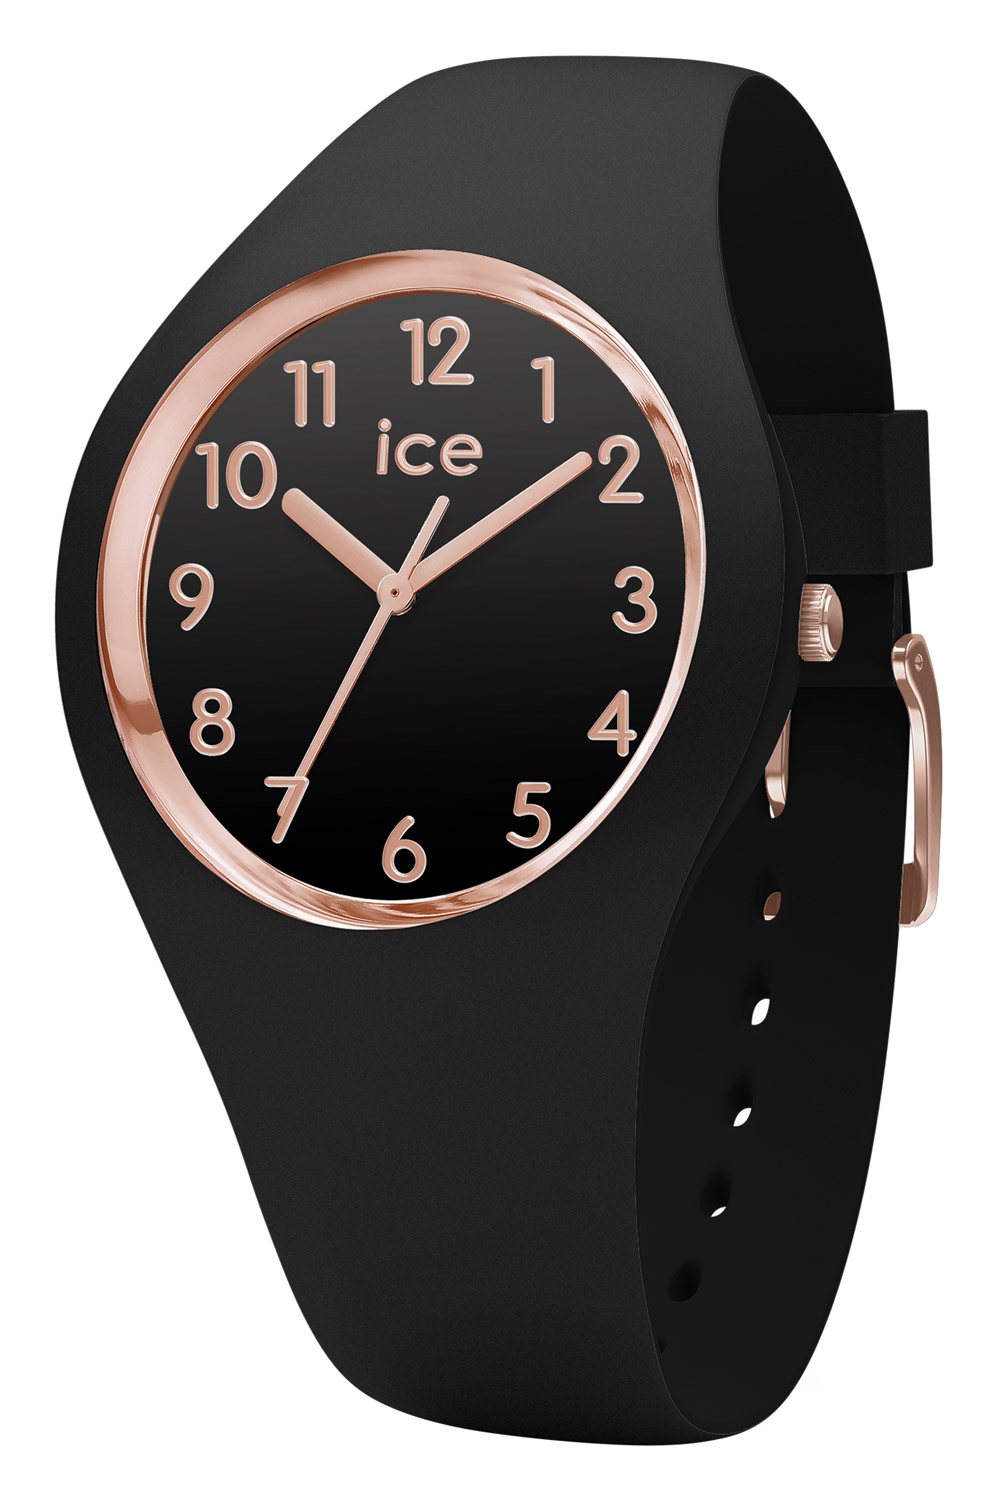 ice watch uhren g nstig kaufen uhrcenter armbanduhren shop. Black Bedroom Furniture Sets. Home Design Ideas